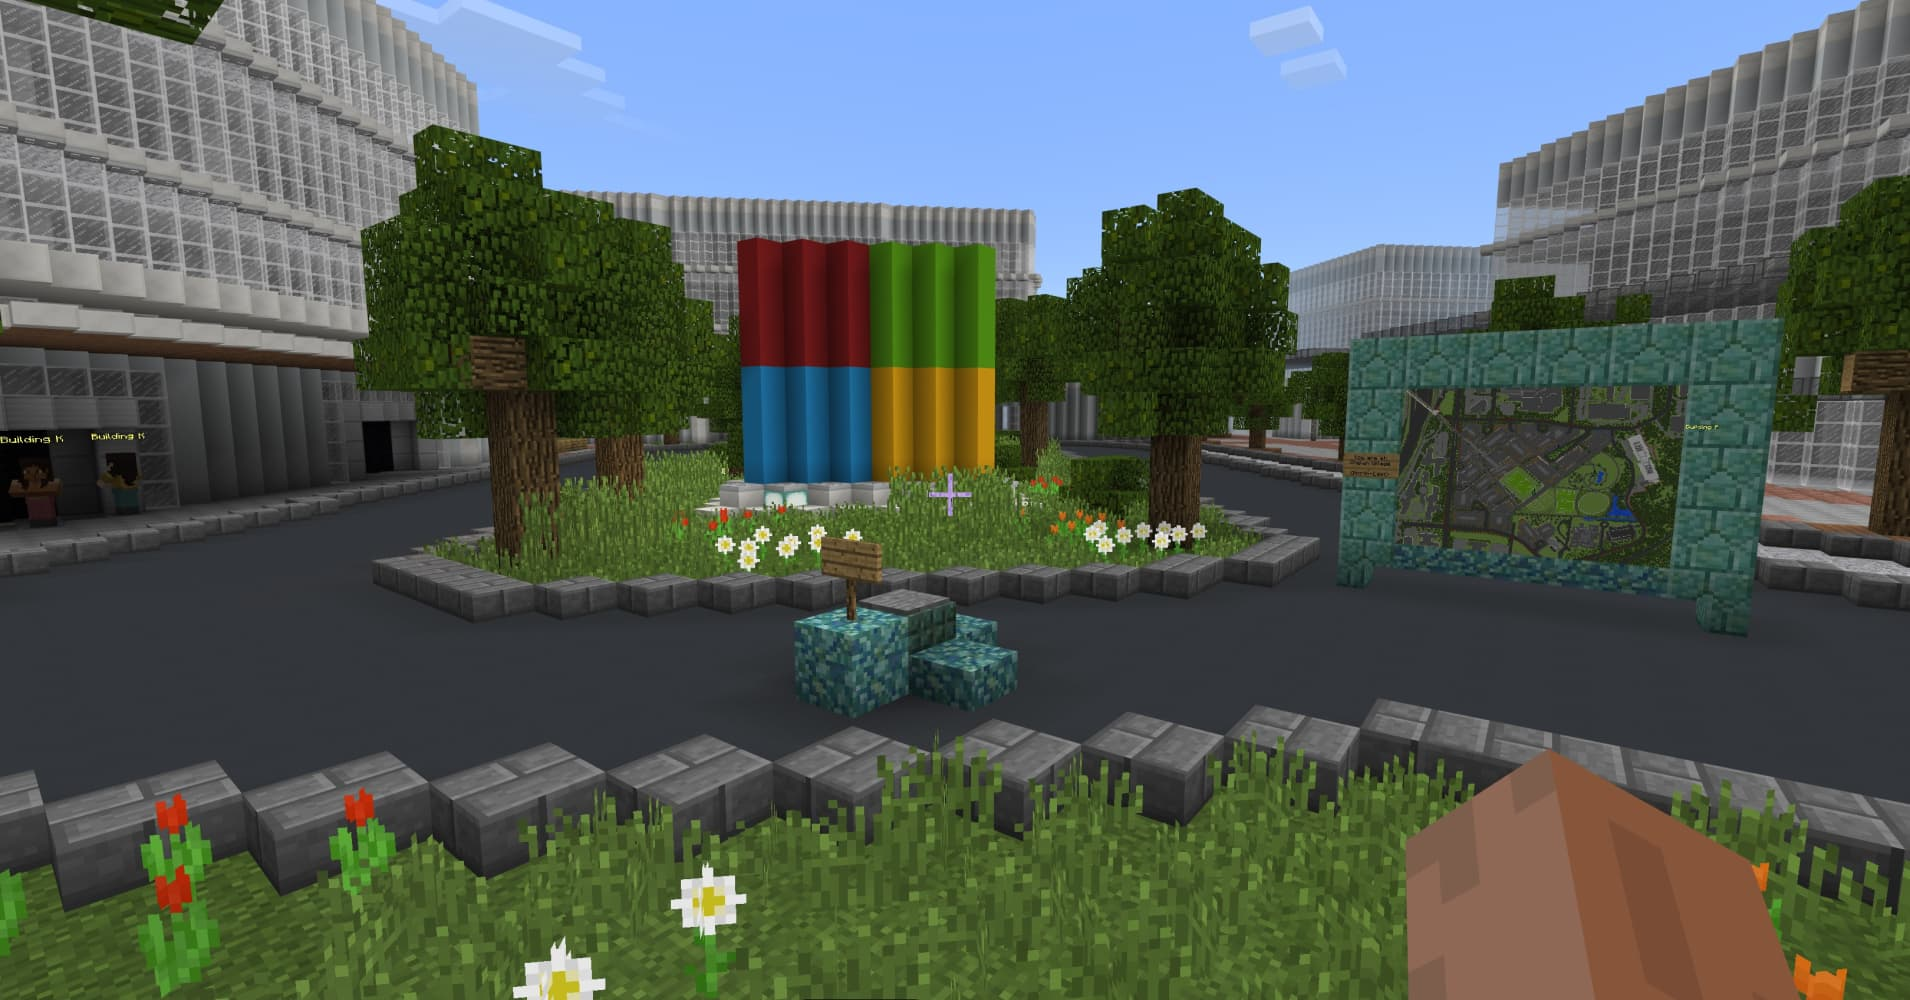 Microsoft Built Its New Campus In Minecraft